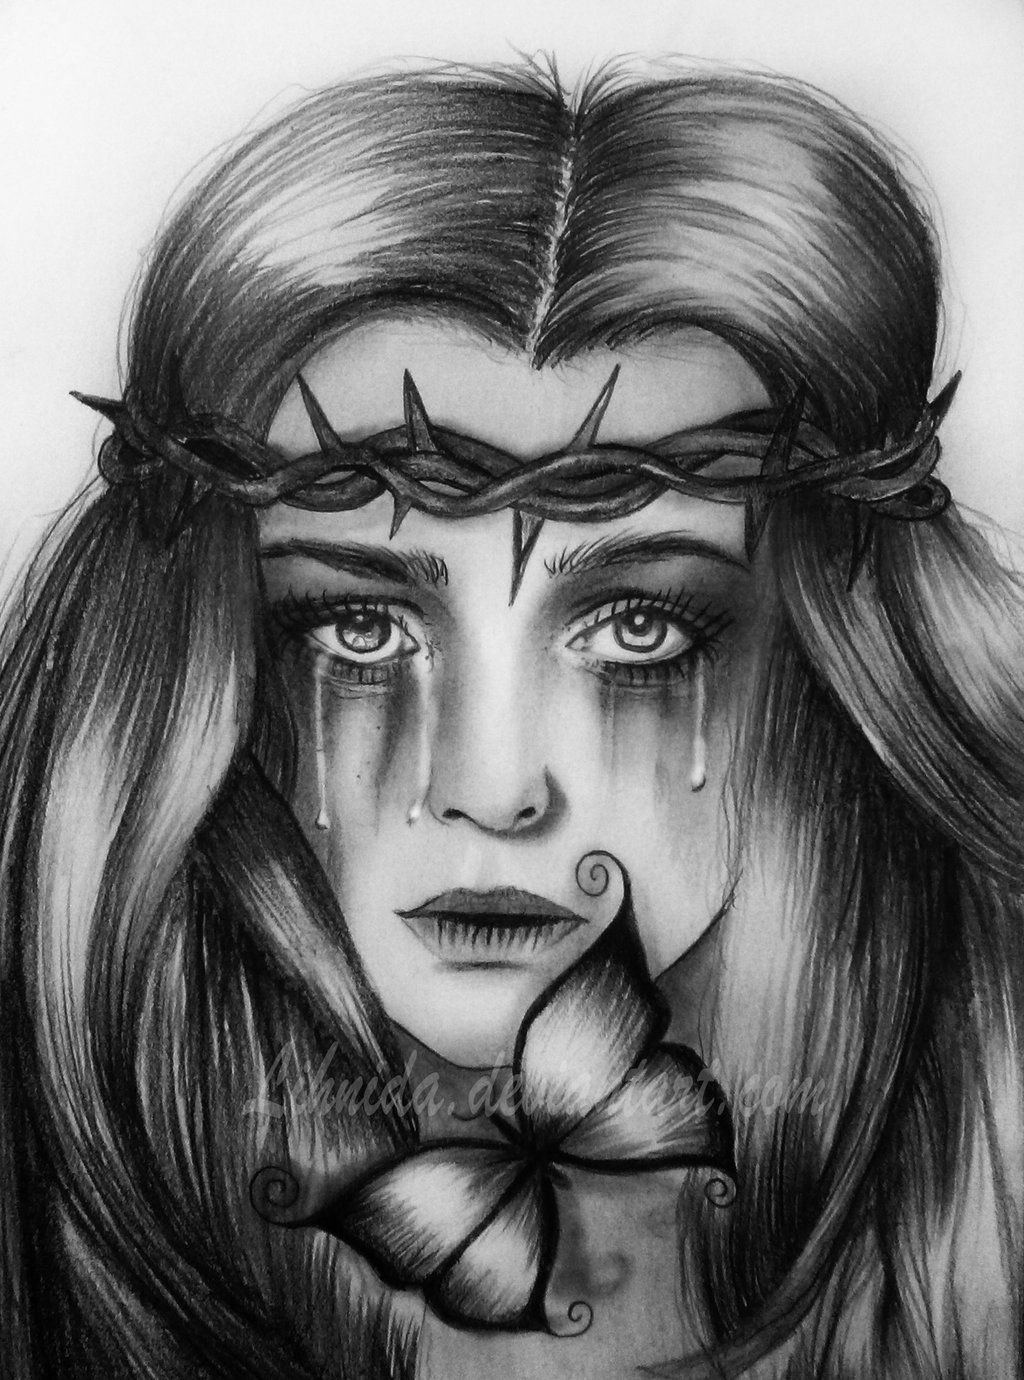 Crying girl by lihnida deviantart com on deviantart